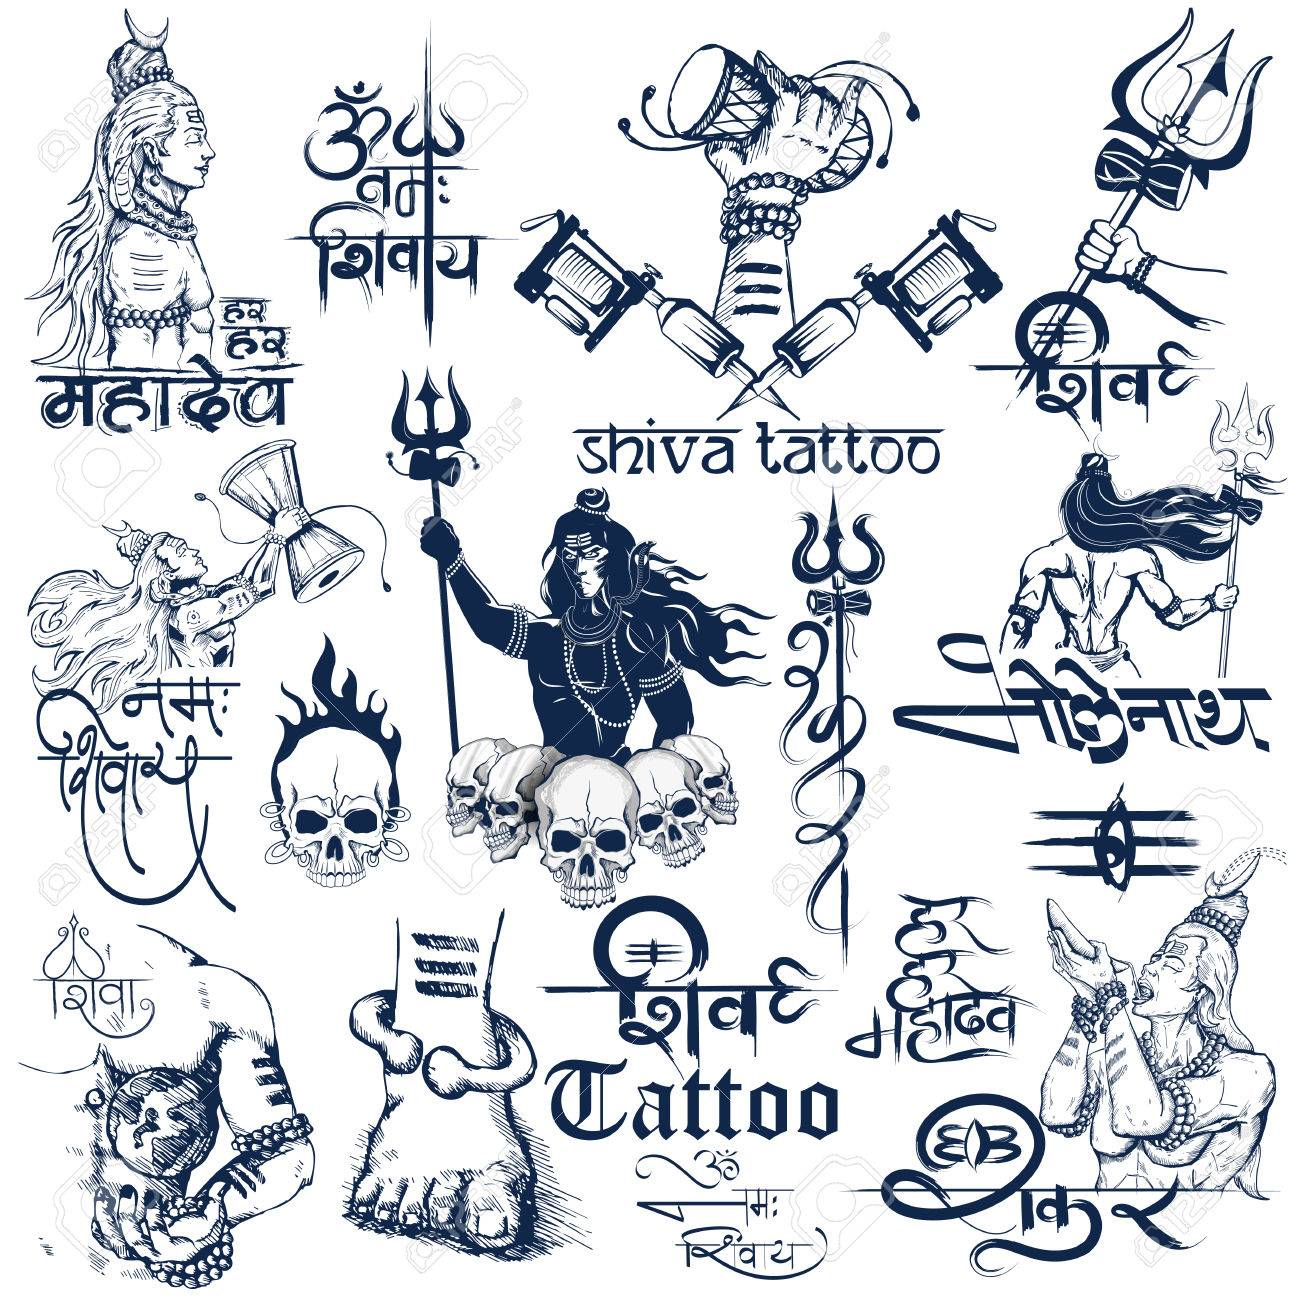 Tattoo Art Design Of Lord Shiva Collection Royalty Free Cliparts Vectors And Stock Illustration Image 78714077